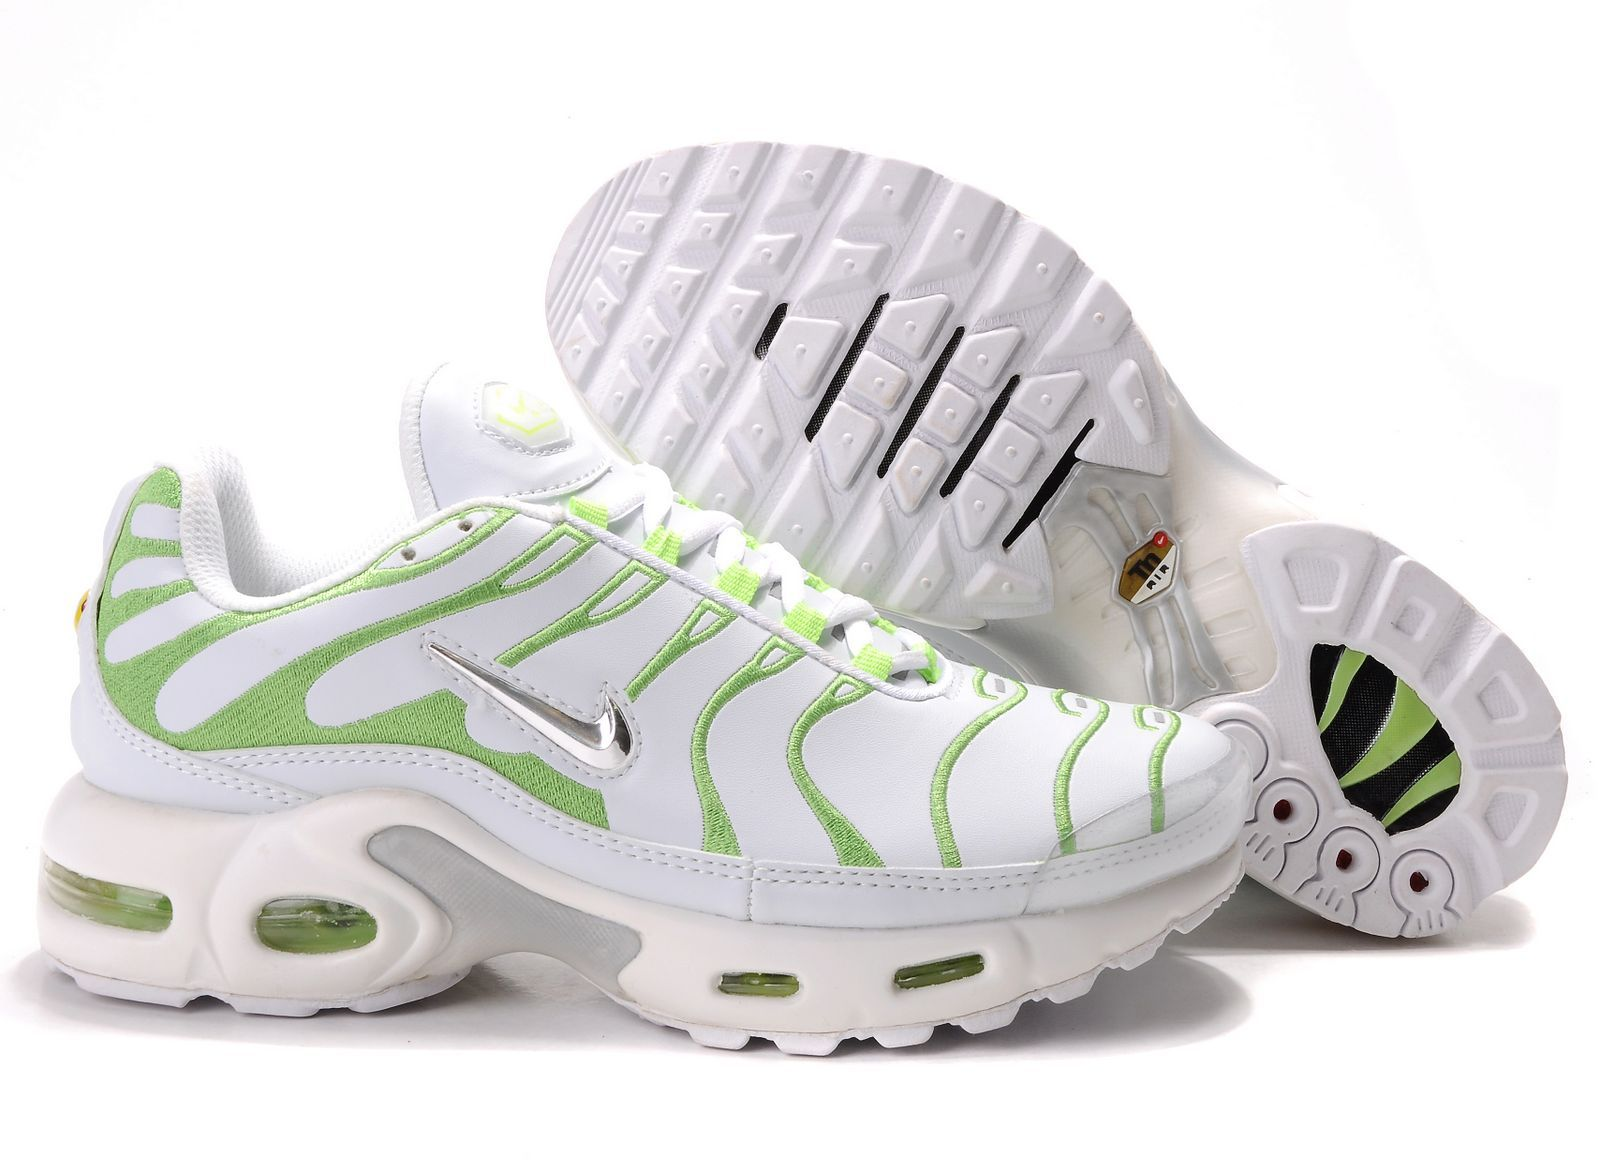 Nike Air Max Plus Womens Running Shoes No 20 With Images Nike